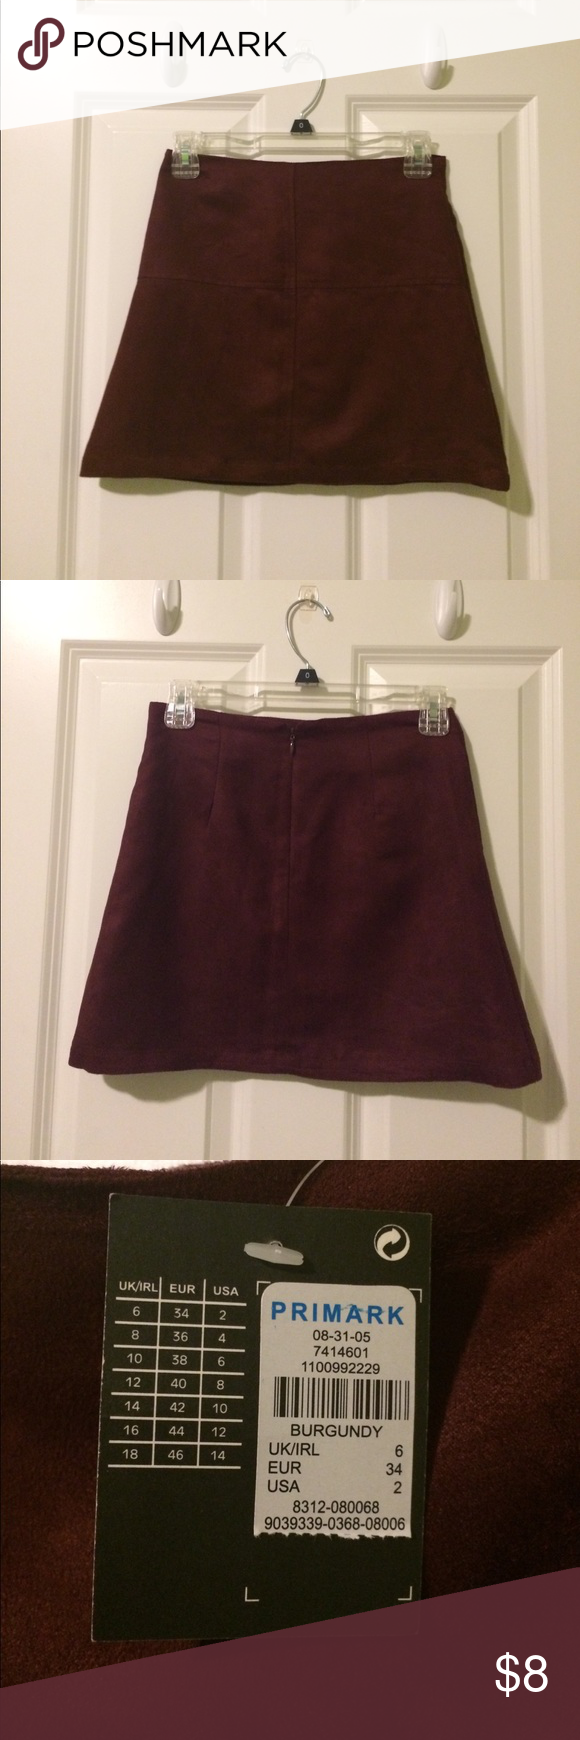 acc461c469 Primark maroon Faux suede mini skirt Tried it on and left it in the closet.